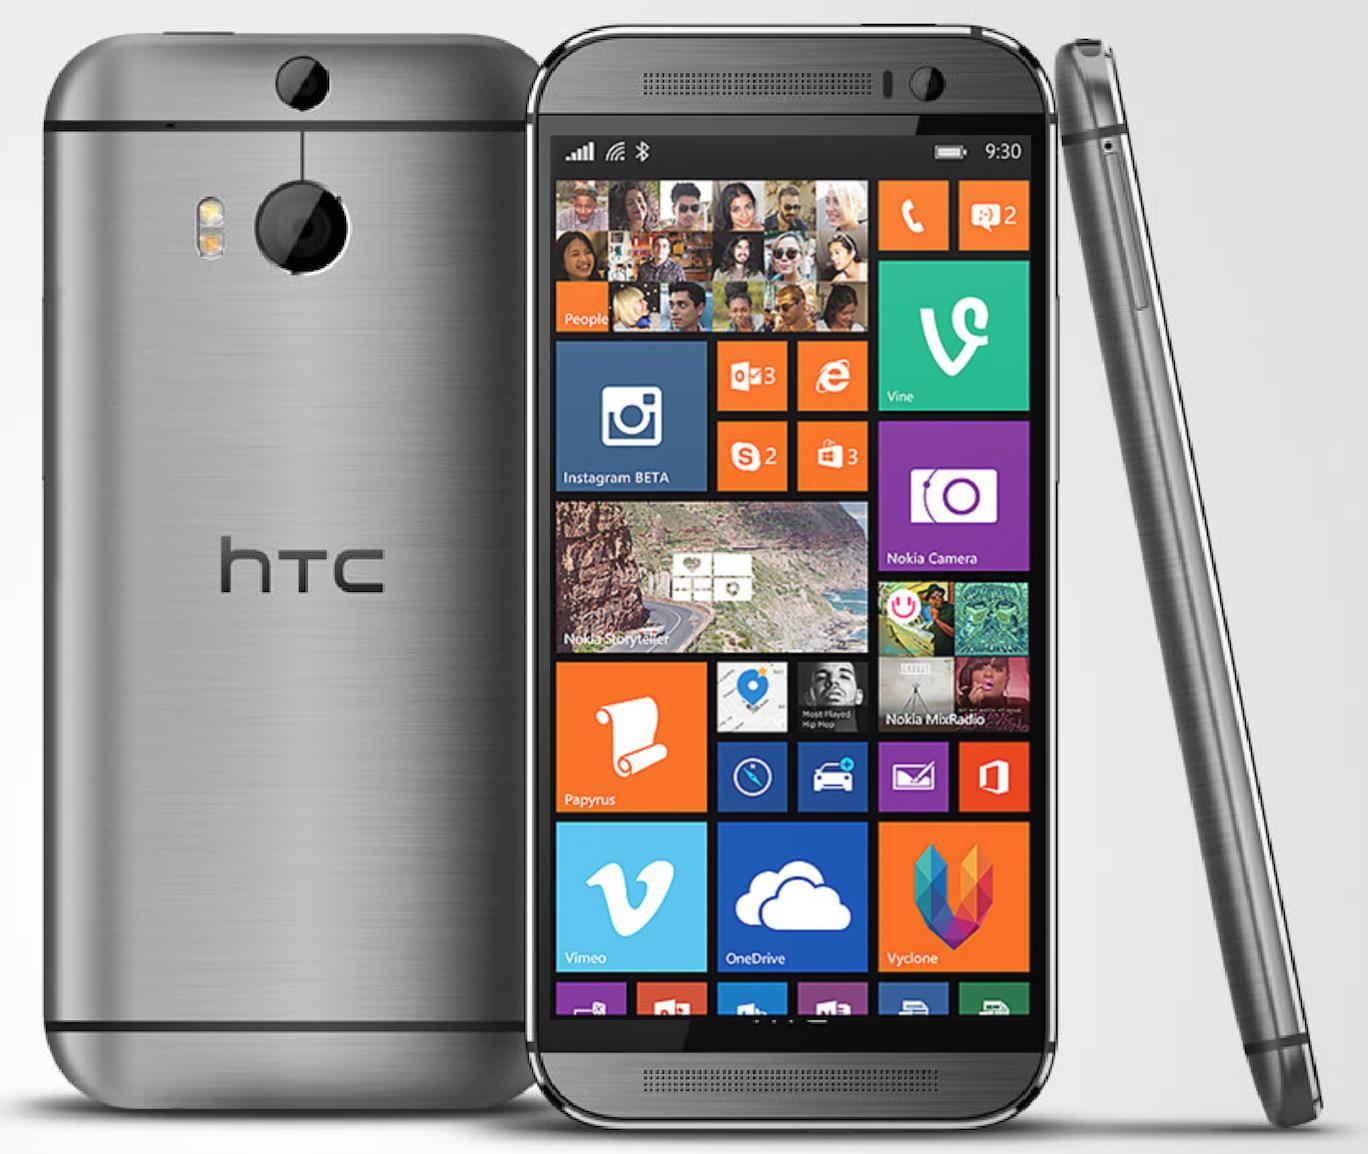 HTC Blames Microsoft for Not Updating Their Windows Phone to Windows